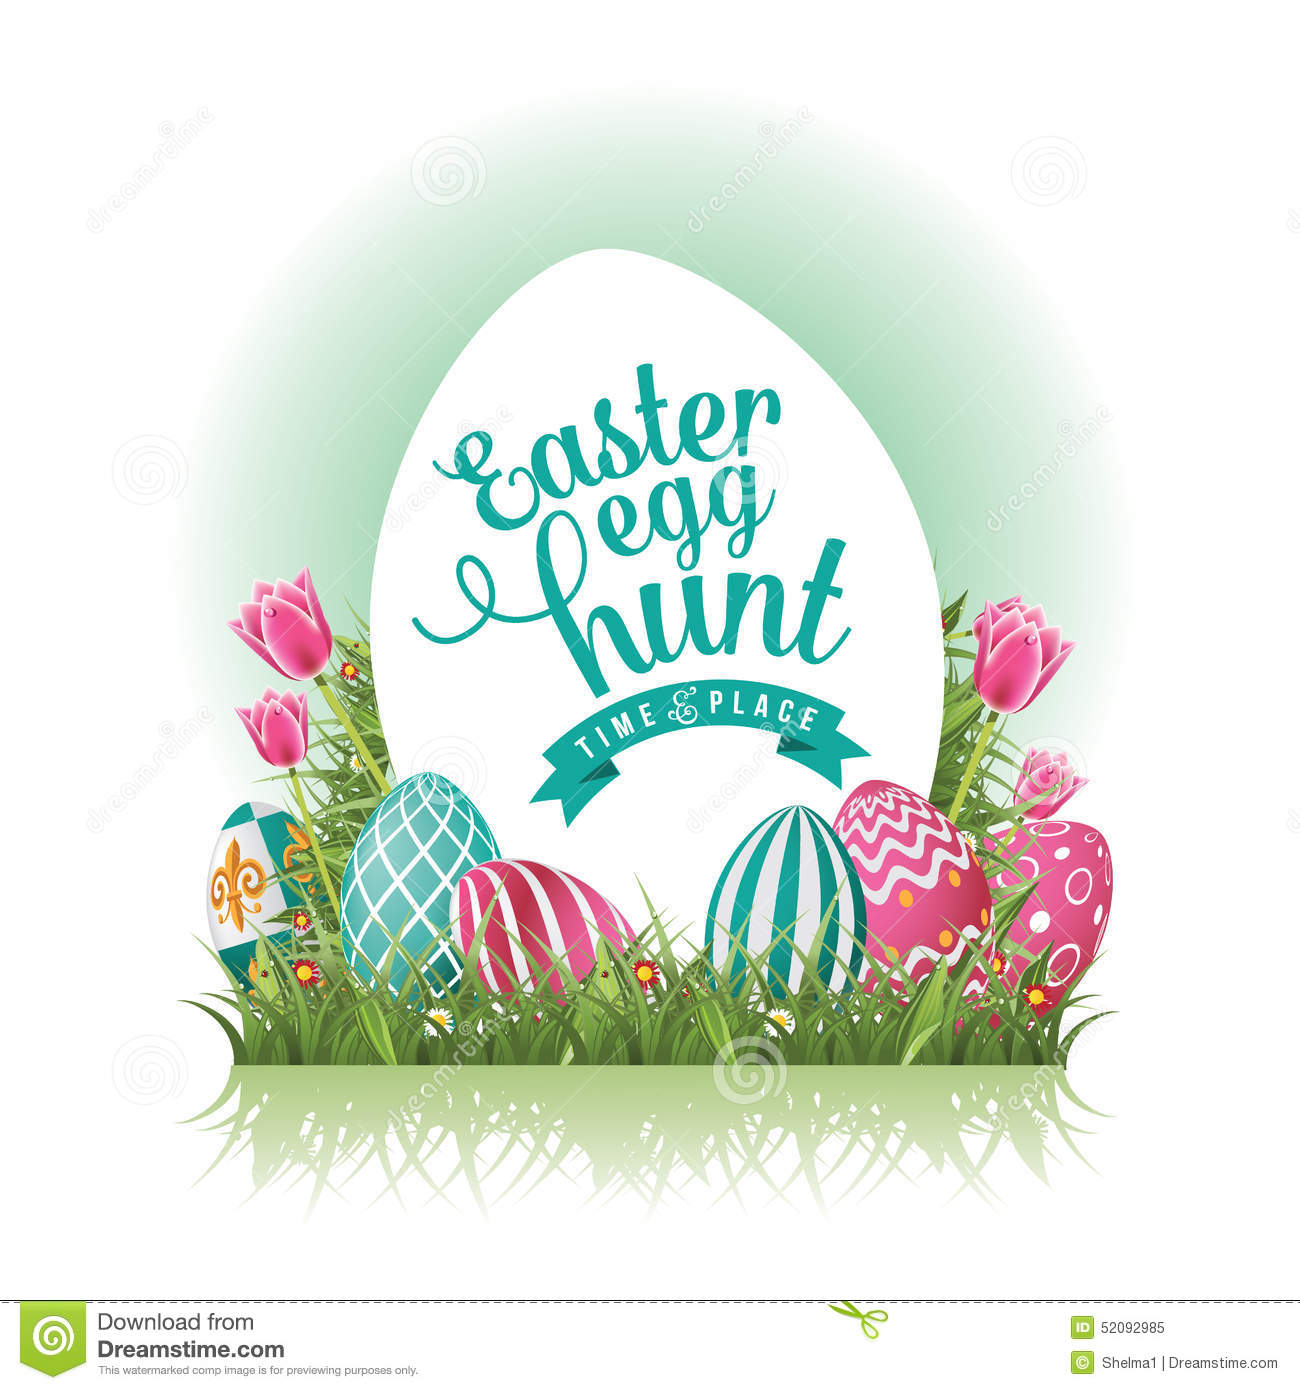 clip art easter egg hunt ideas u2013 clipart free download